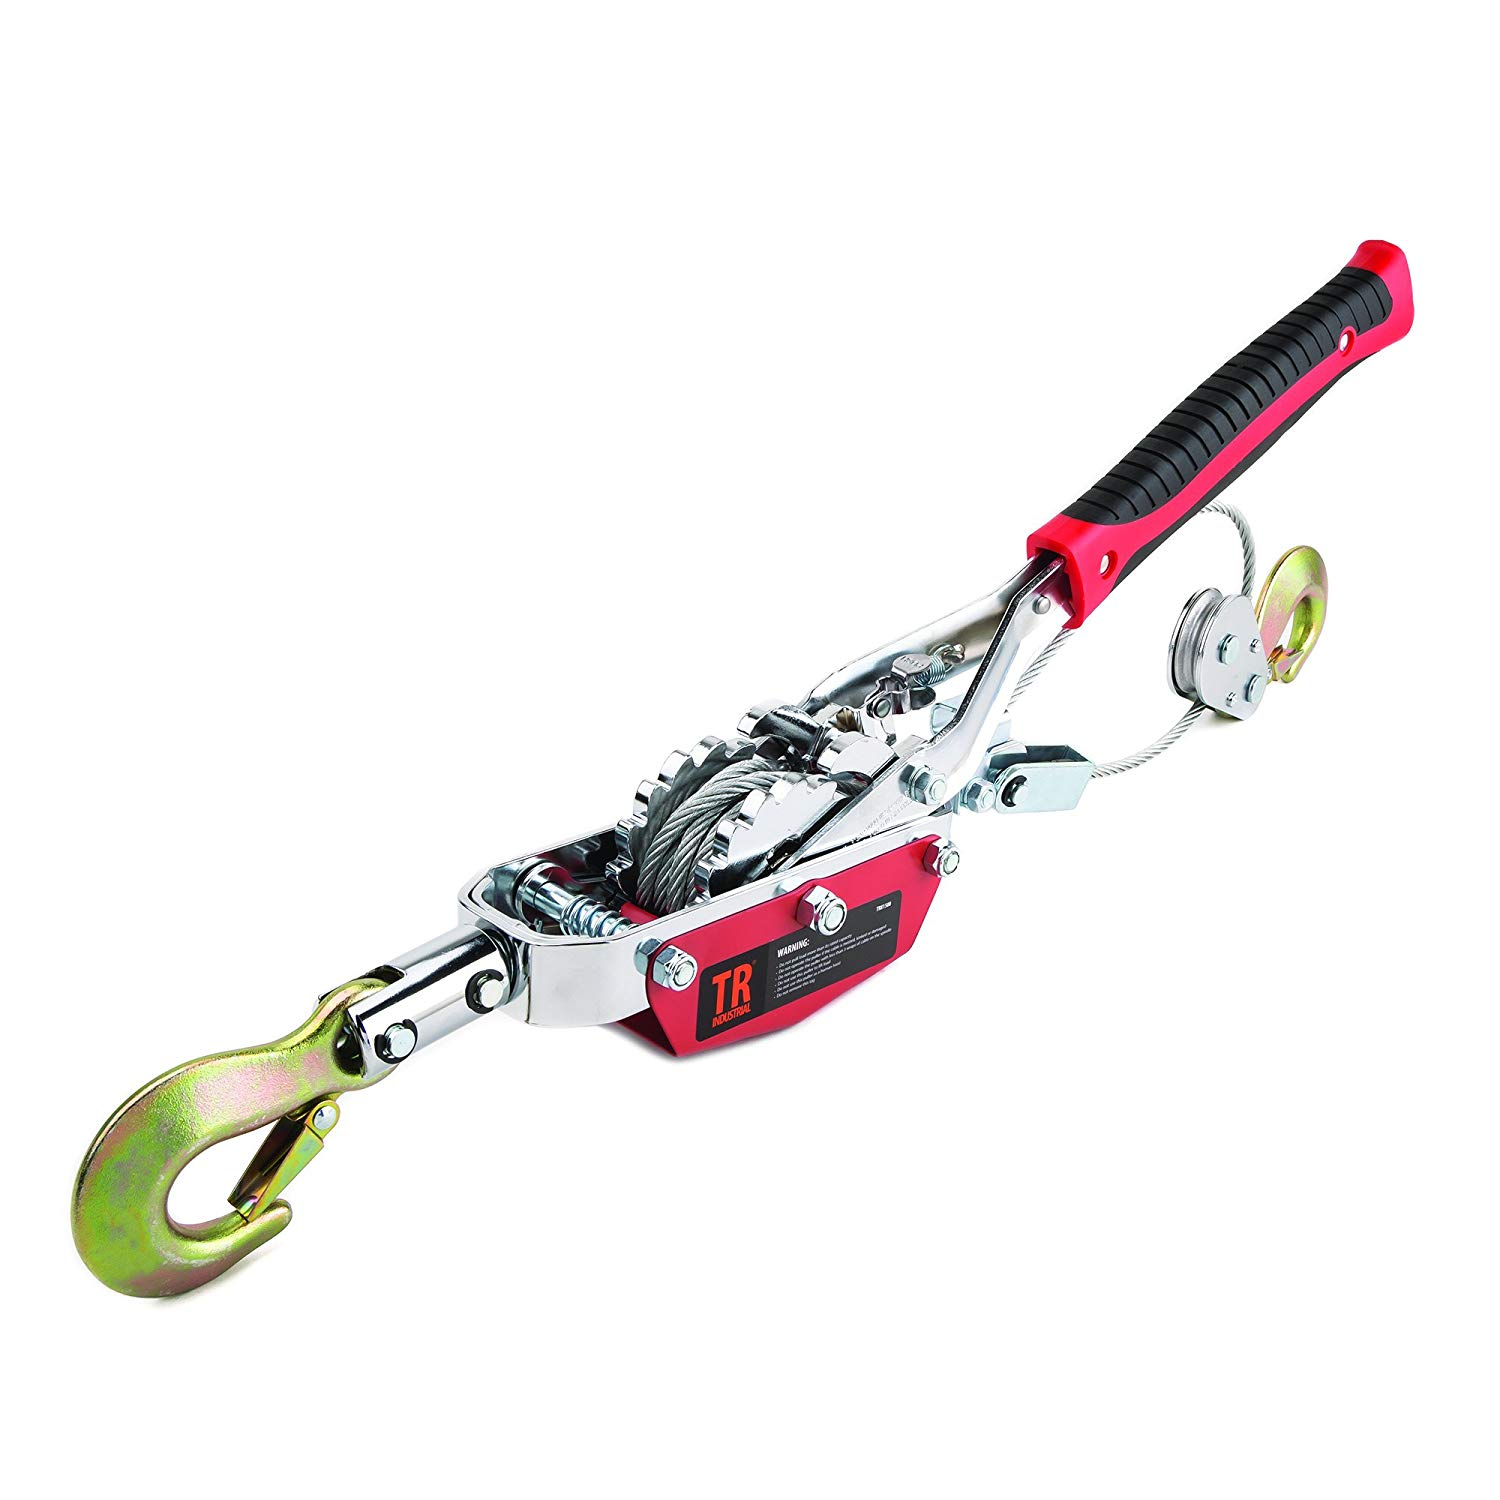 TR Industrial Portable 4-Ton Dual Gear Power Puller